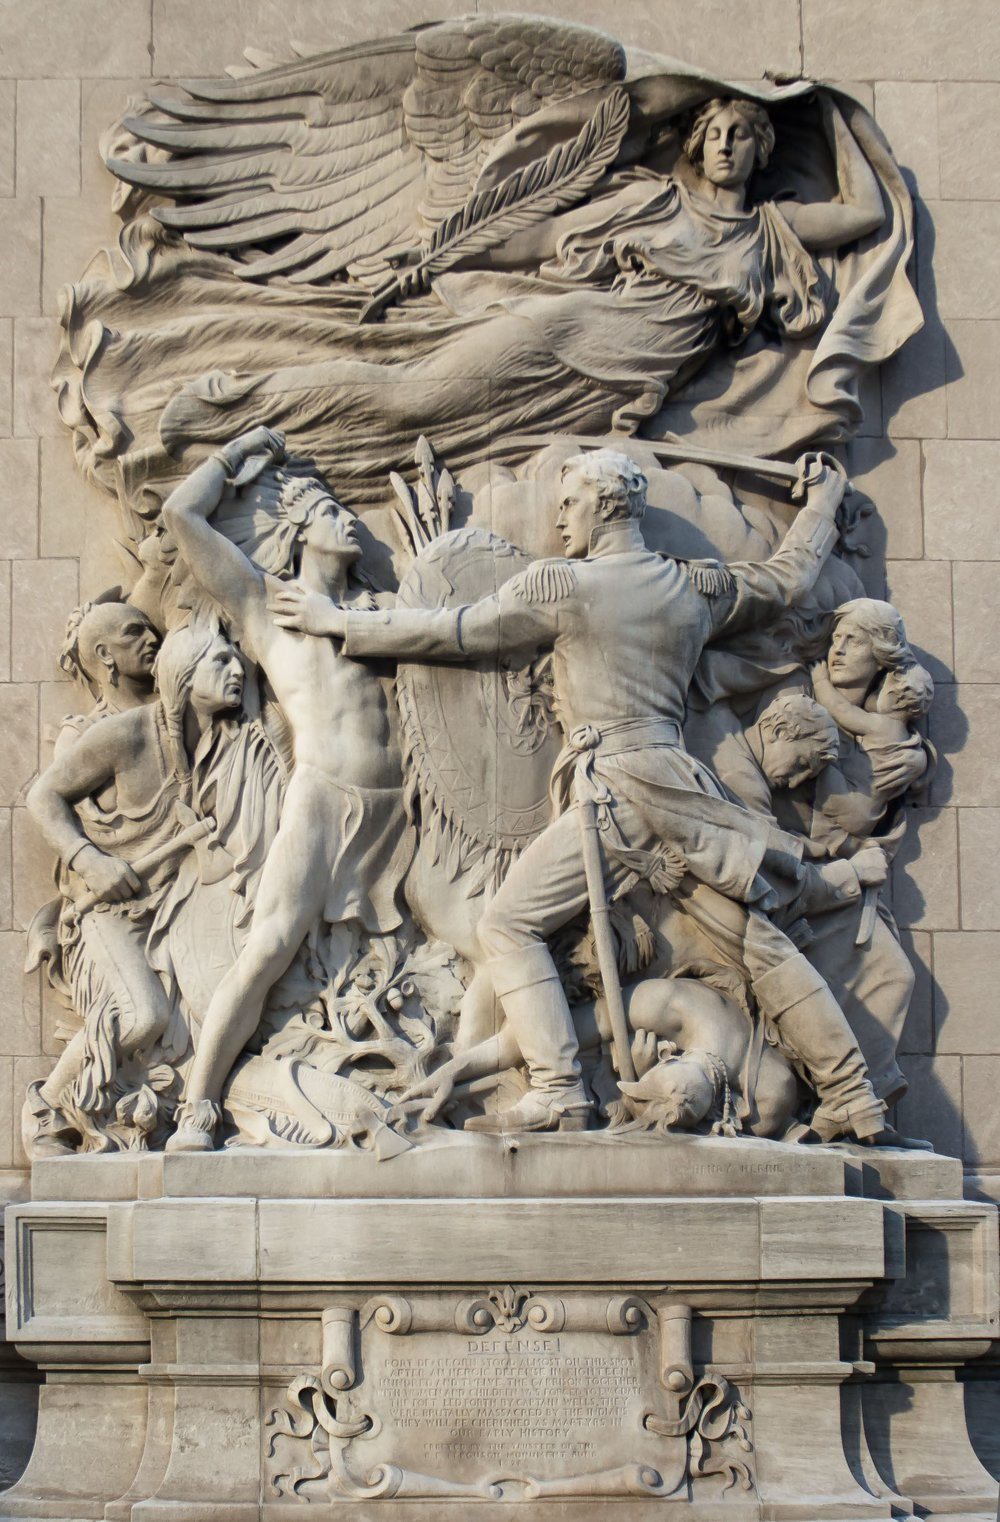 """Henry Hering, """"Defense,"""" 1928. Relief on the southwestern tower of the Michigan Avenue Bridge in Chicago."""